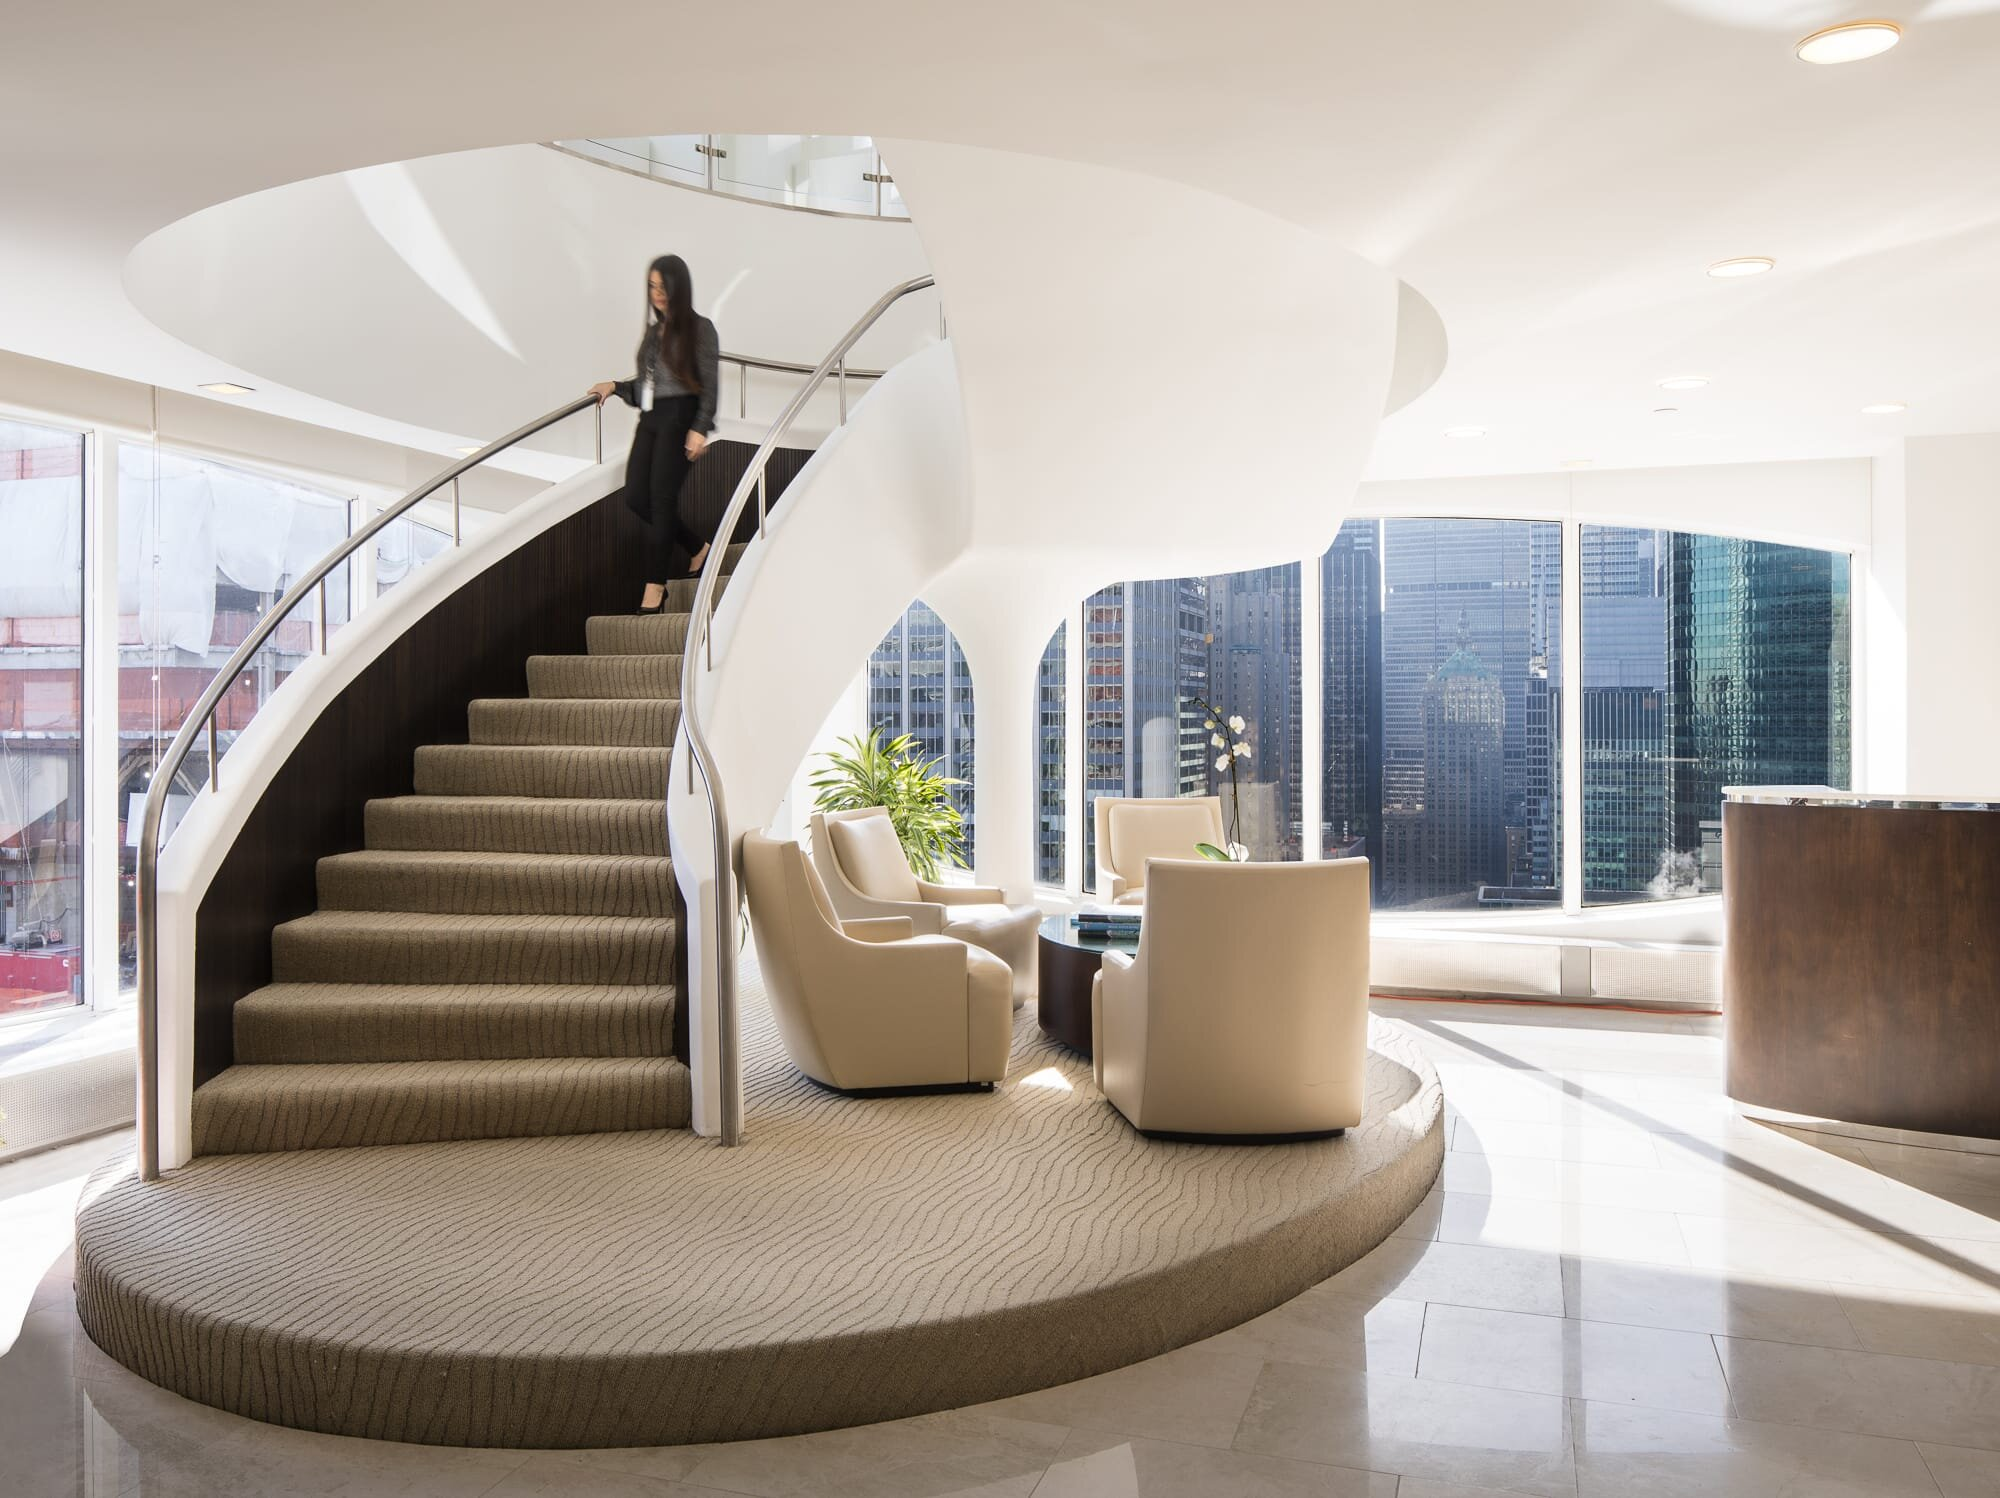 Pavel Bendov Interior Photography of the Office space in New York